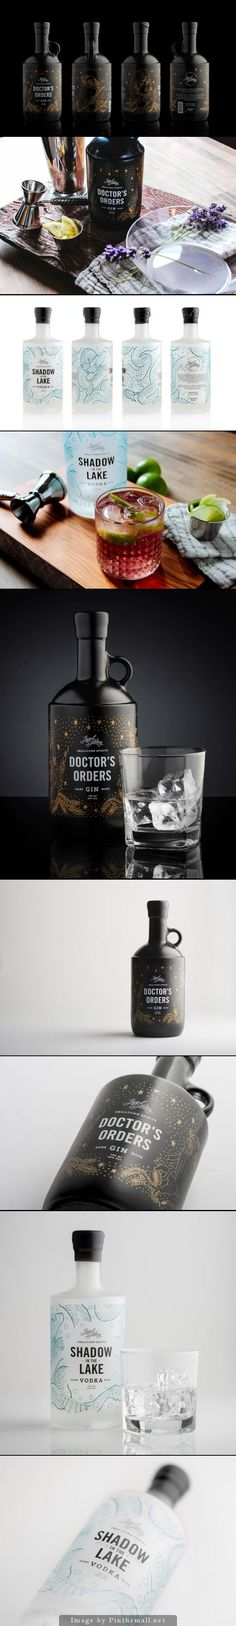 Legend Distillery by Also Known As: Packaging Design